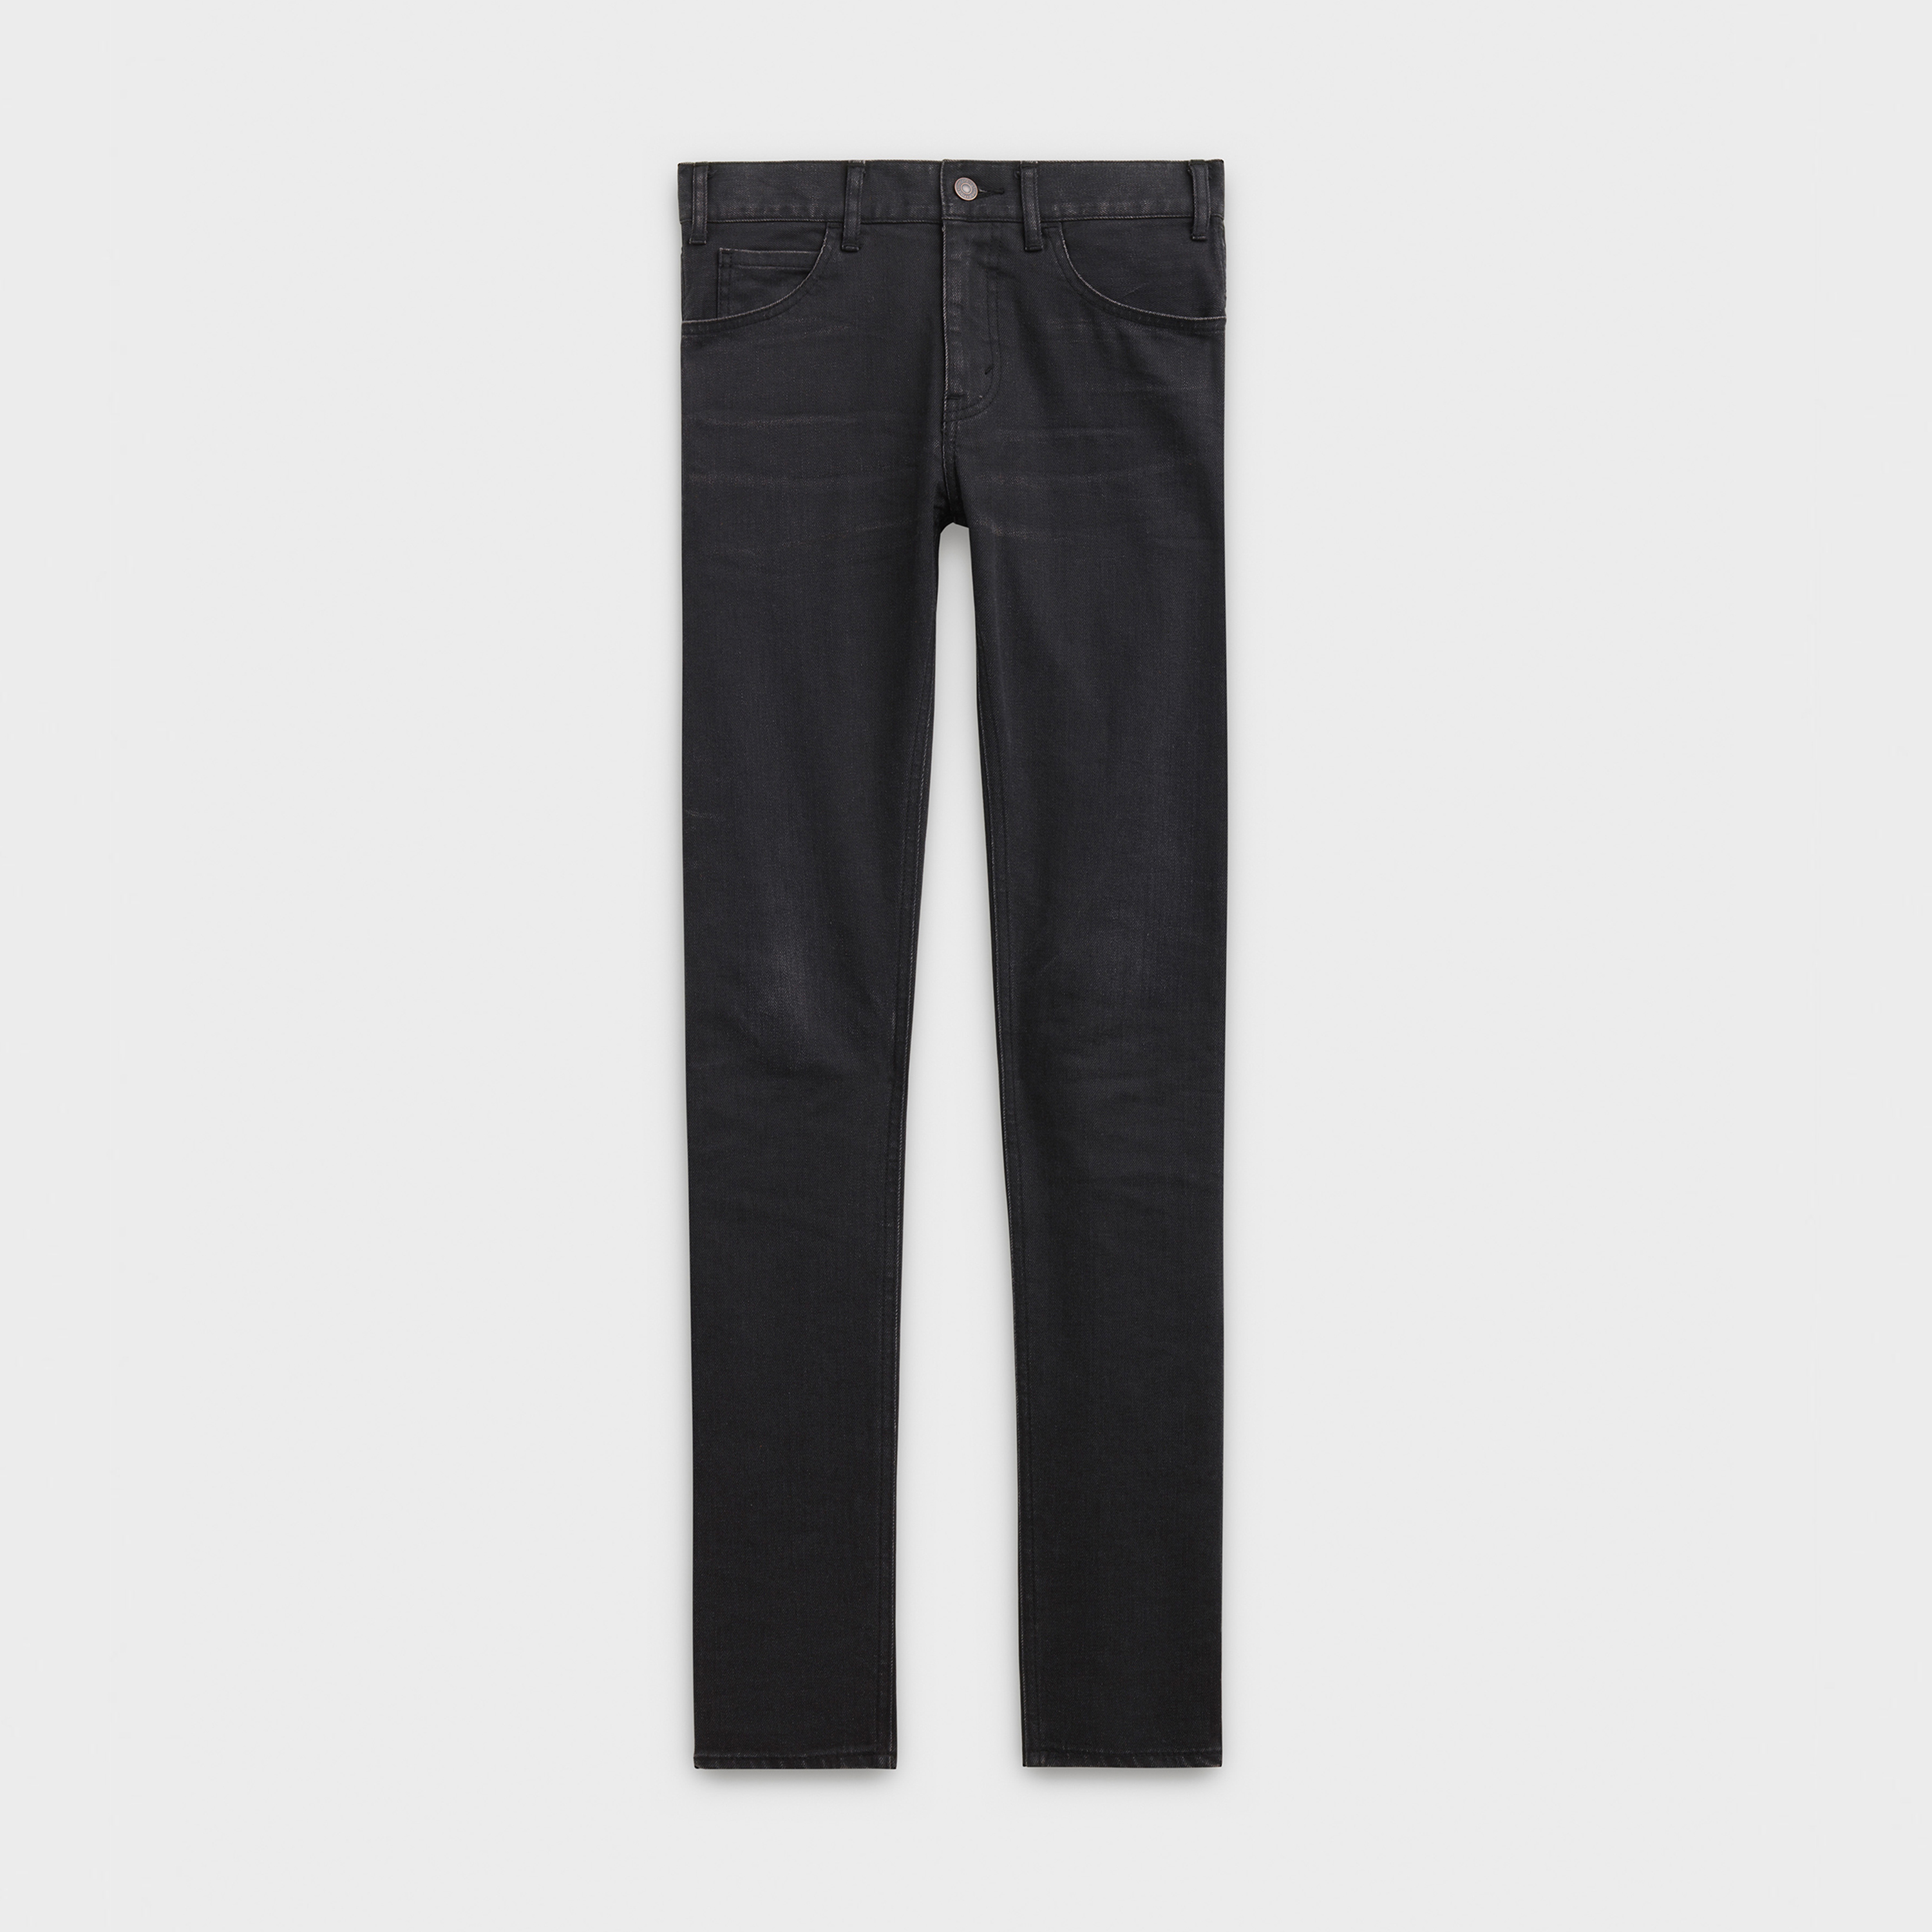 skinny pants low waist in black denim | CELINE